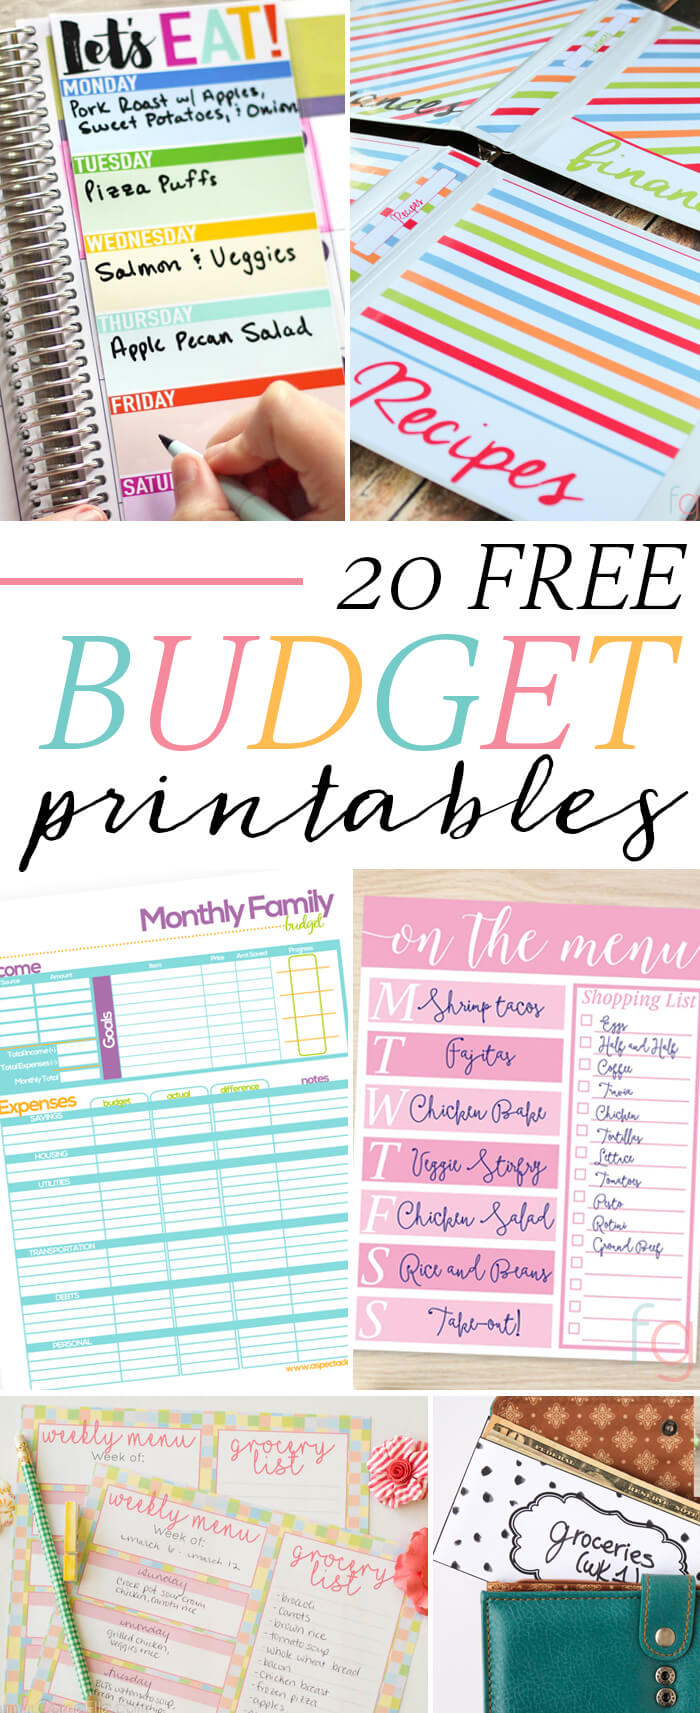 free printable monthly budget planner worksheet